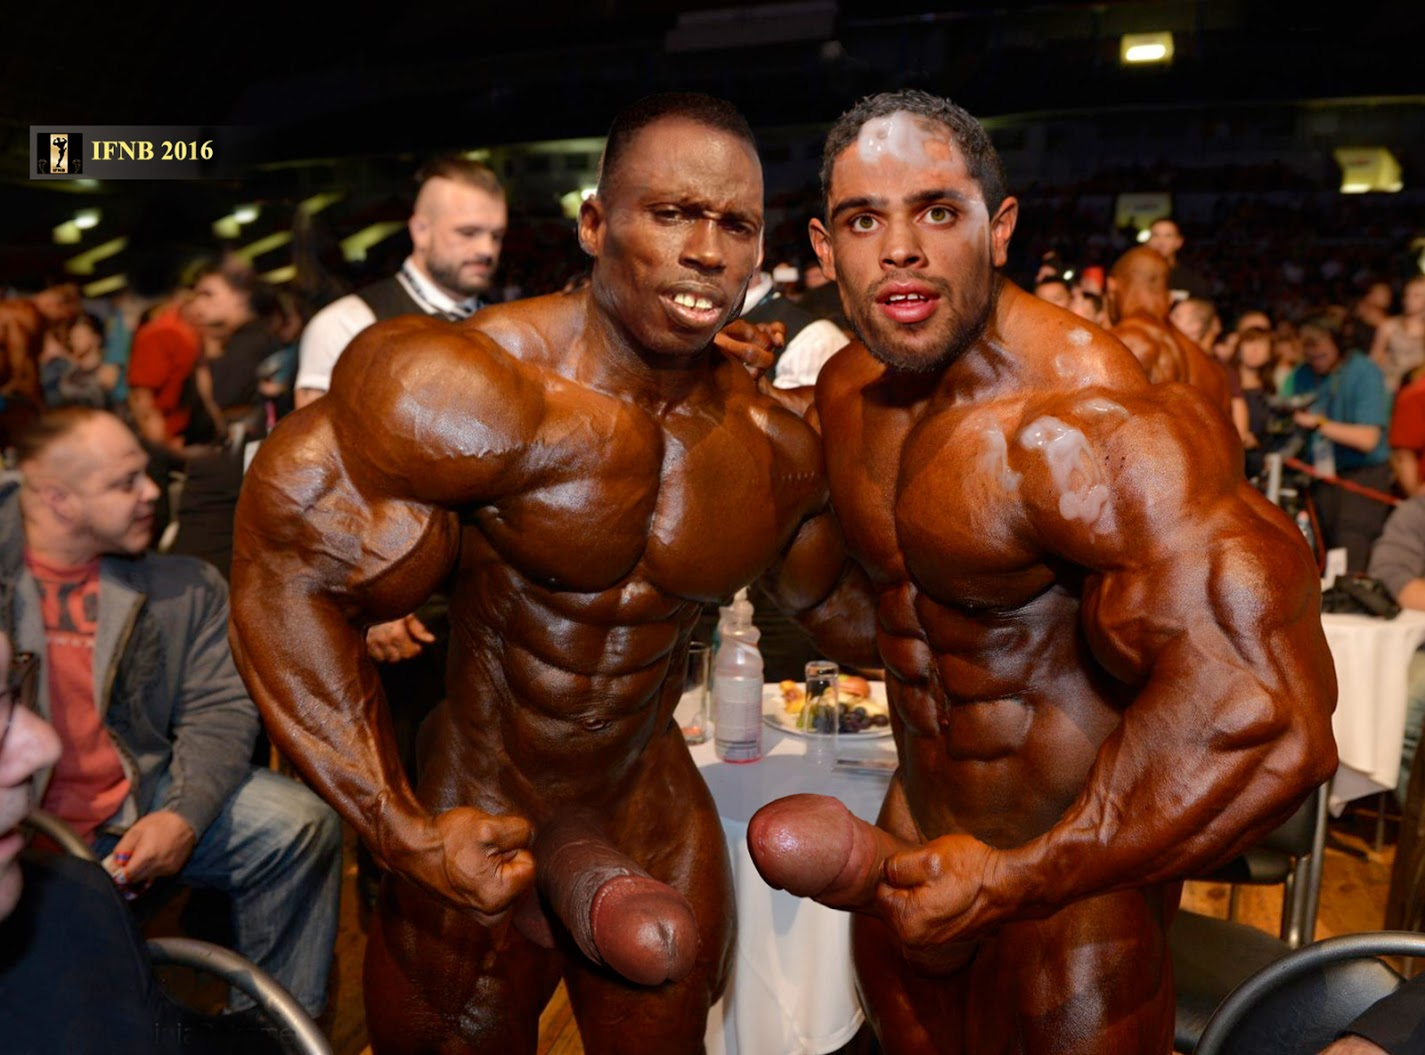 The IFNB Report: Massive Muscle and Cock Blog: IFNB 2016 ...